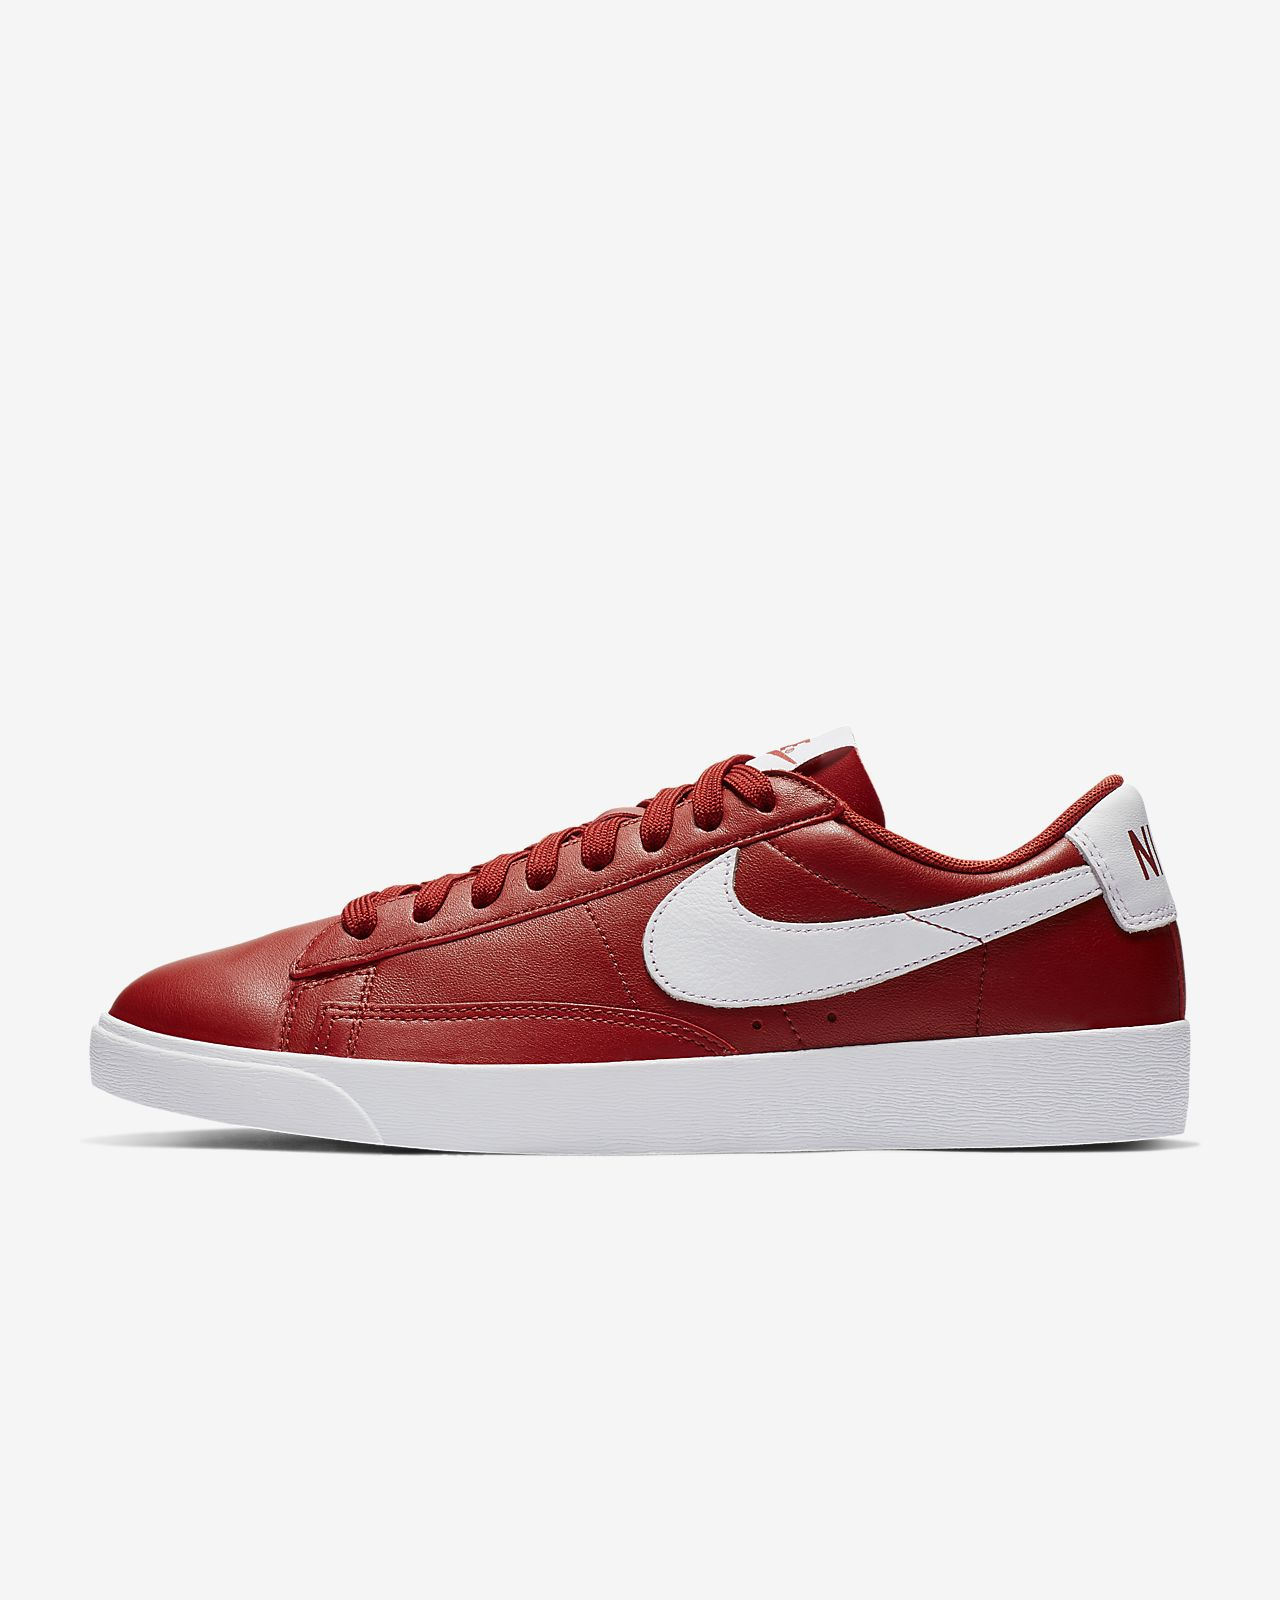 Pour Be Blazer Le Nike Chaussure Low Femme vfq1xCw